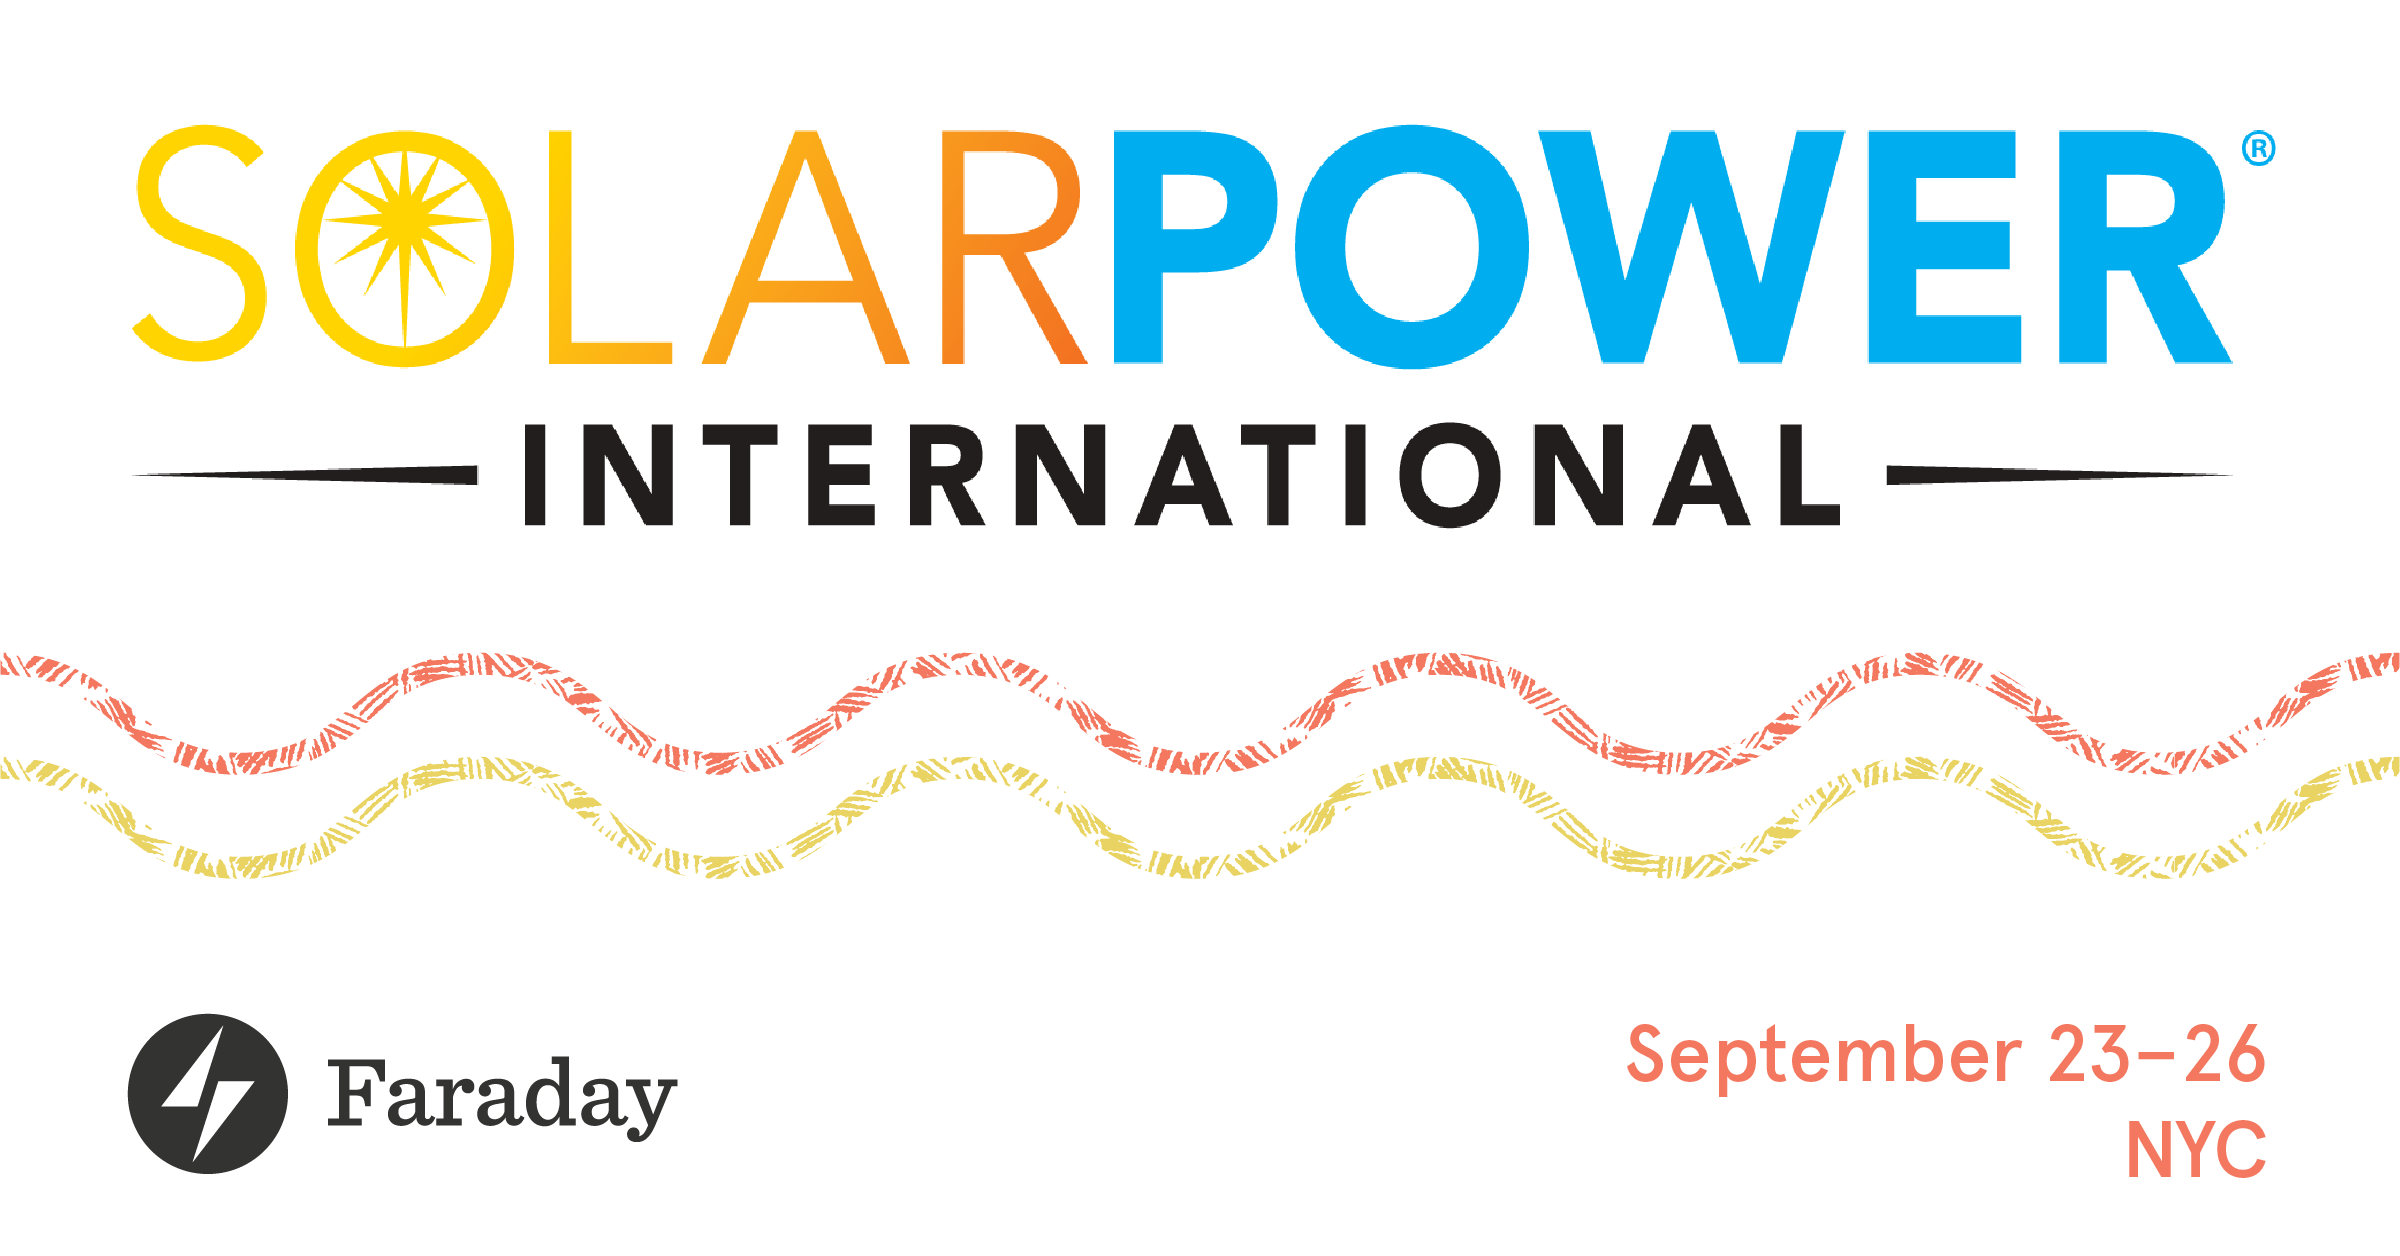 Faraday showcases AI platform at Solar Power International 2019